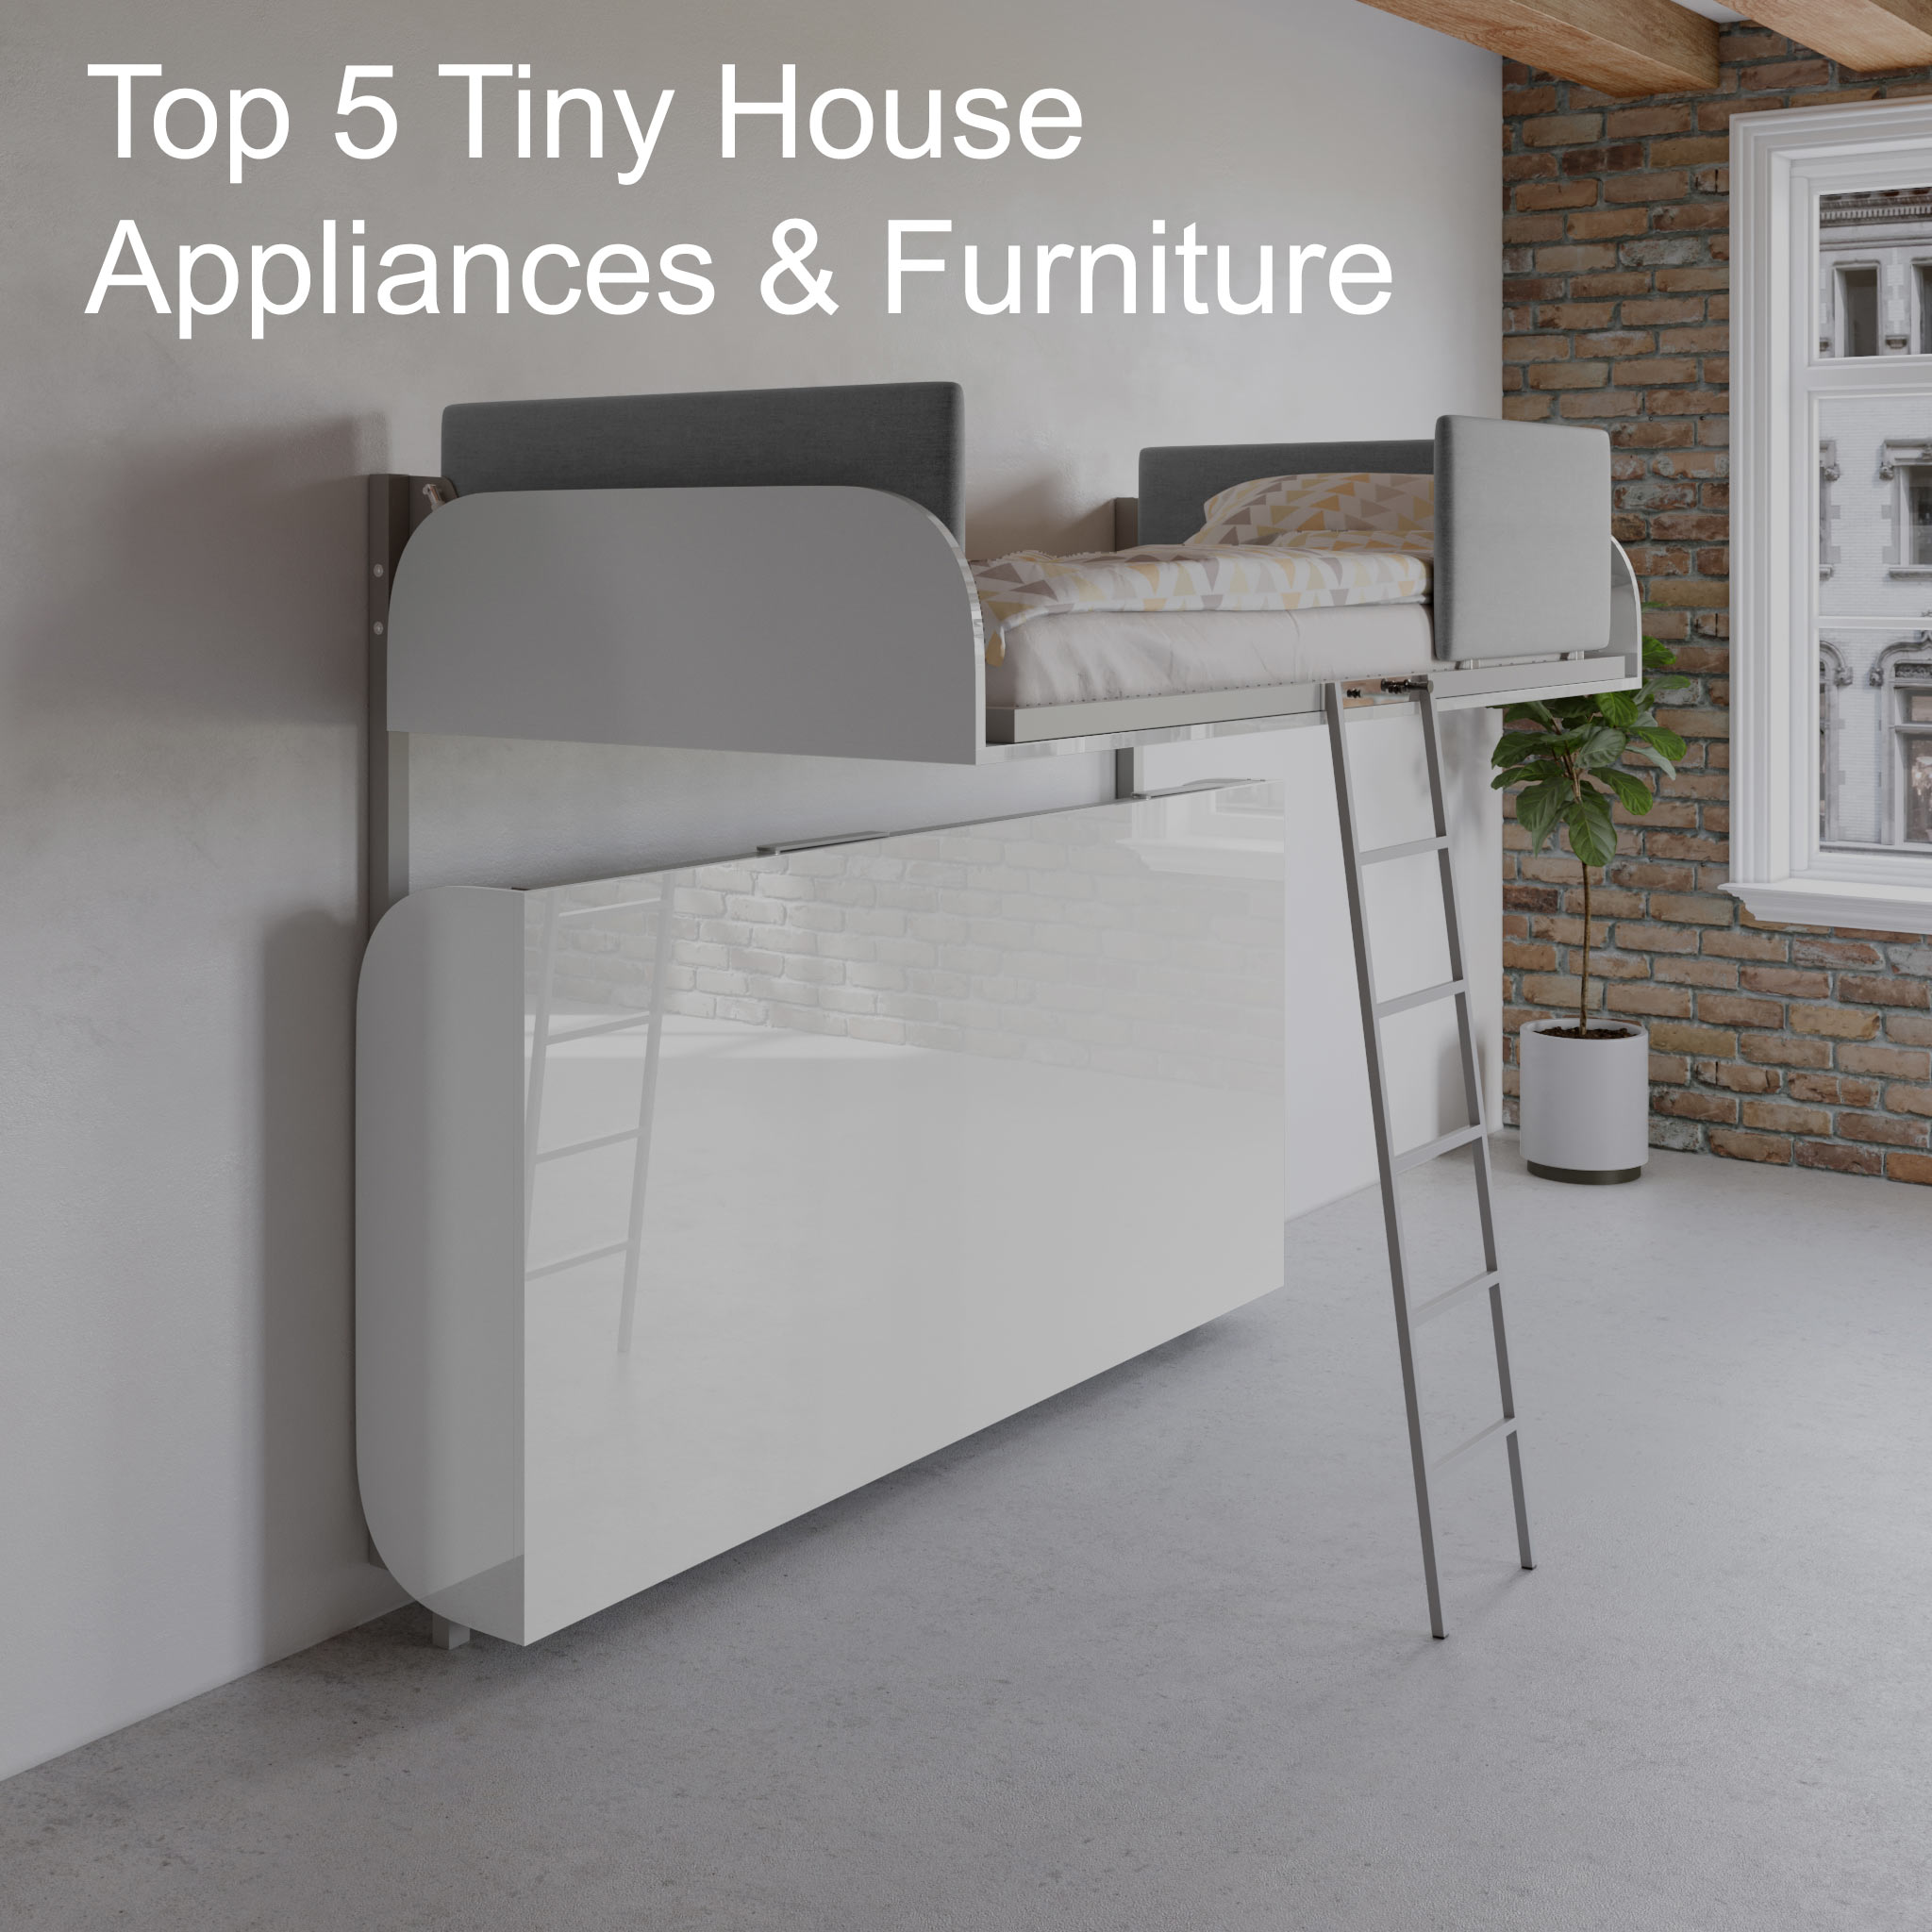 Top 5 Tiny House Appliances And Furniture Expand Furniture